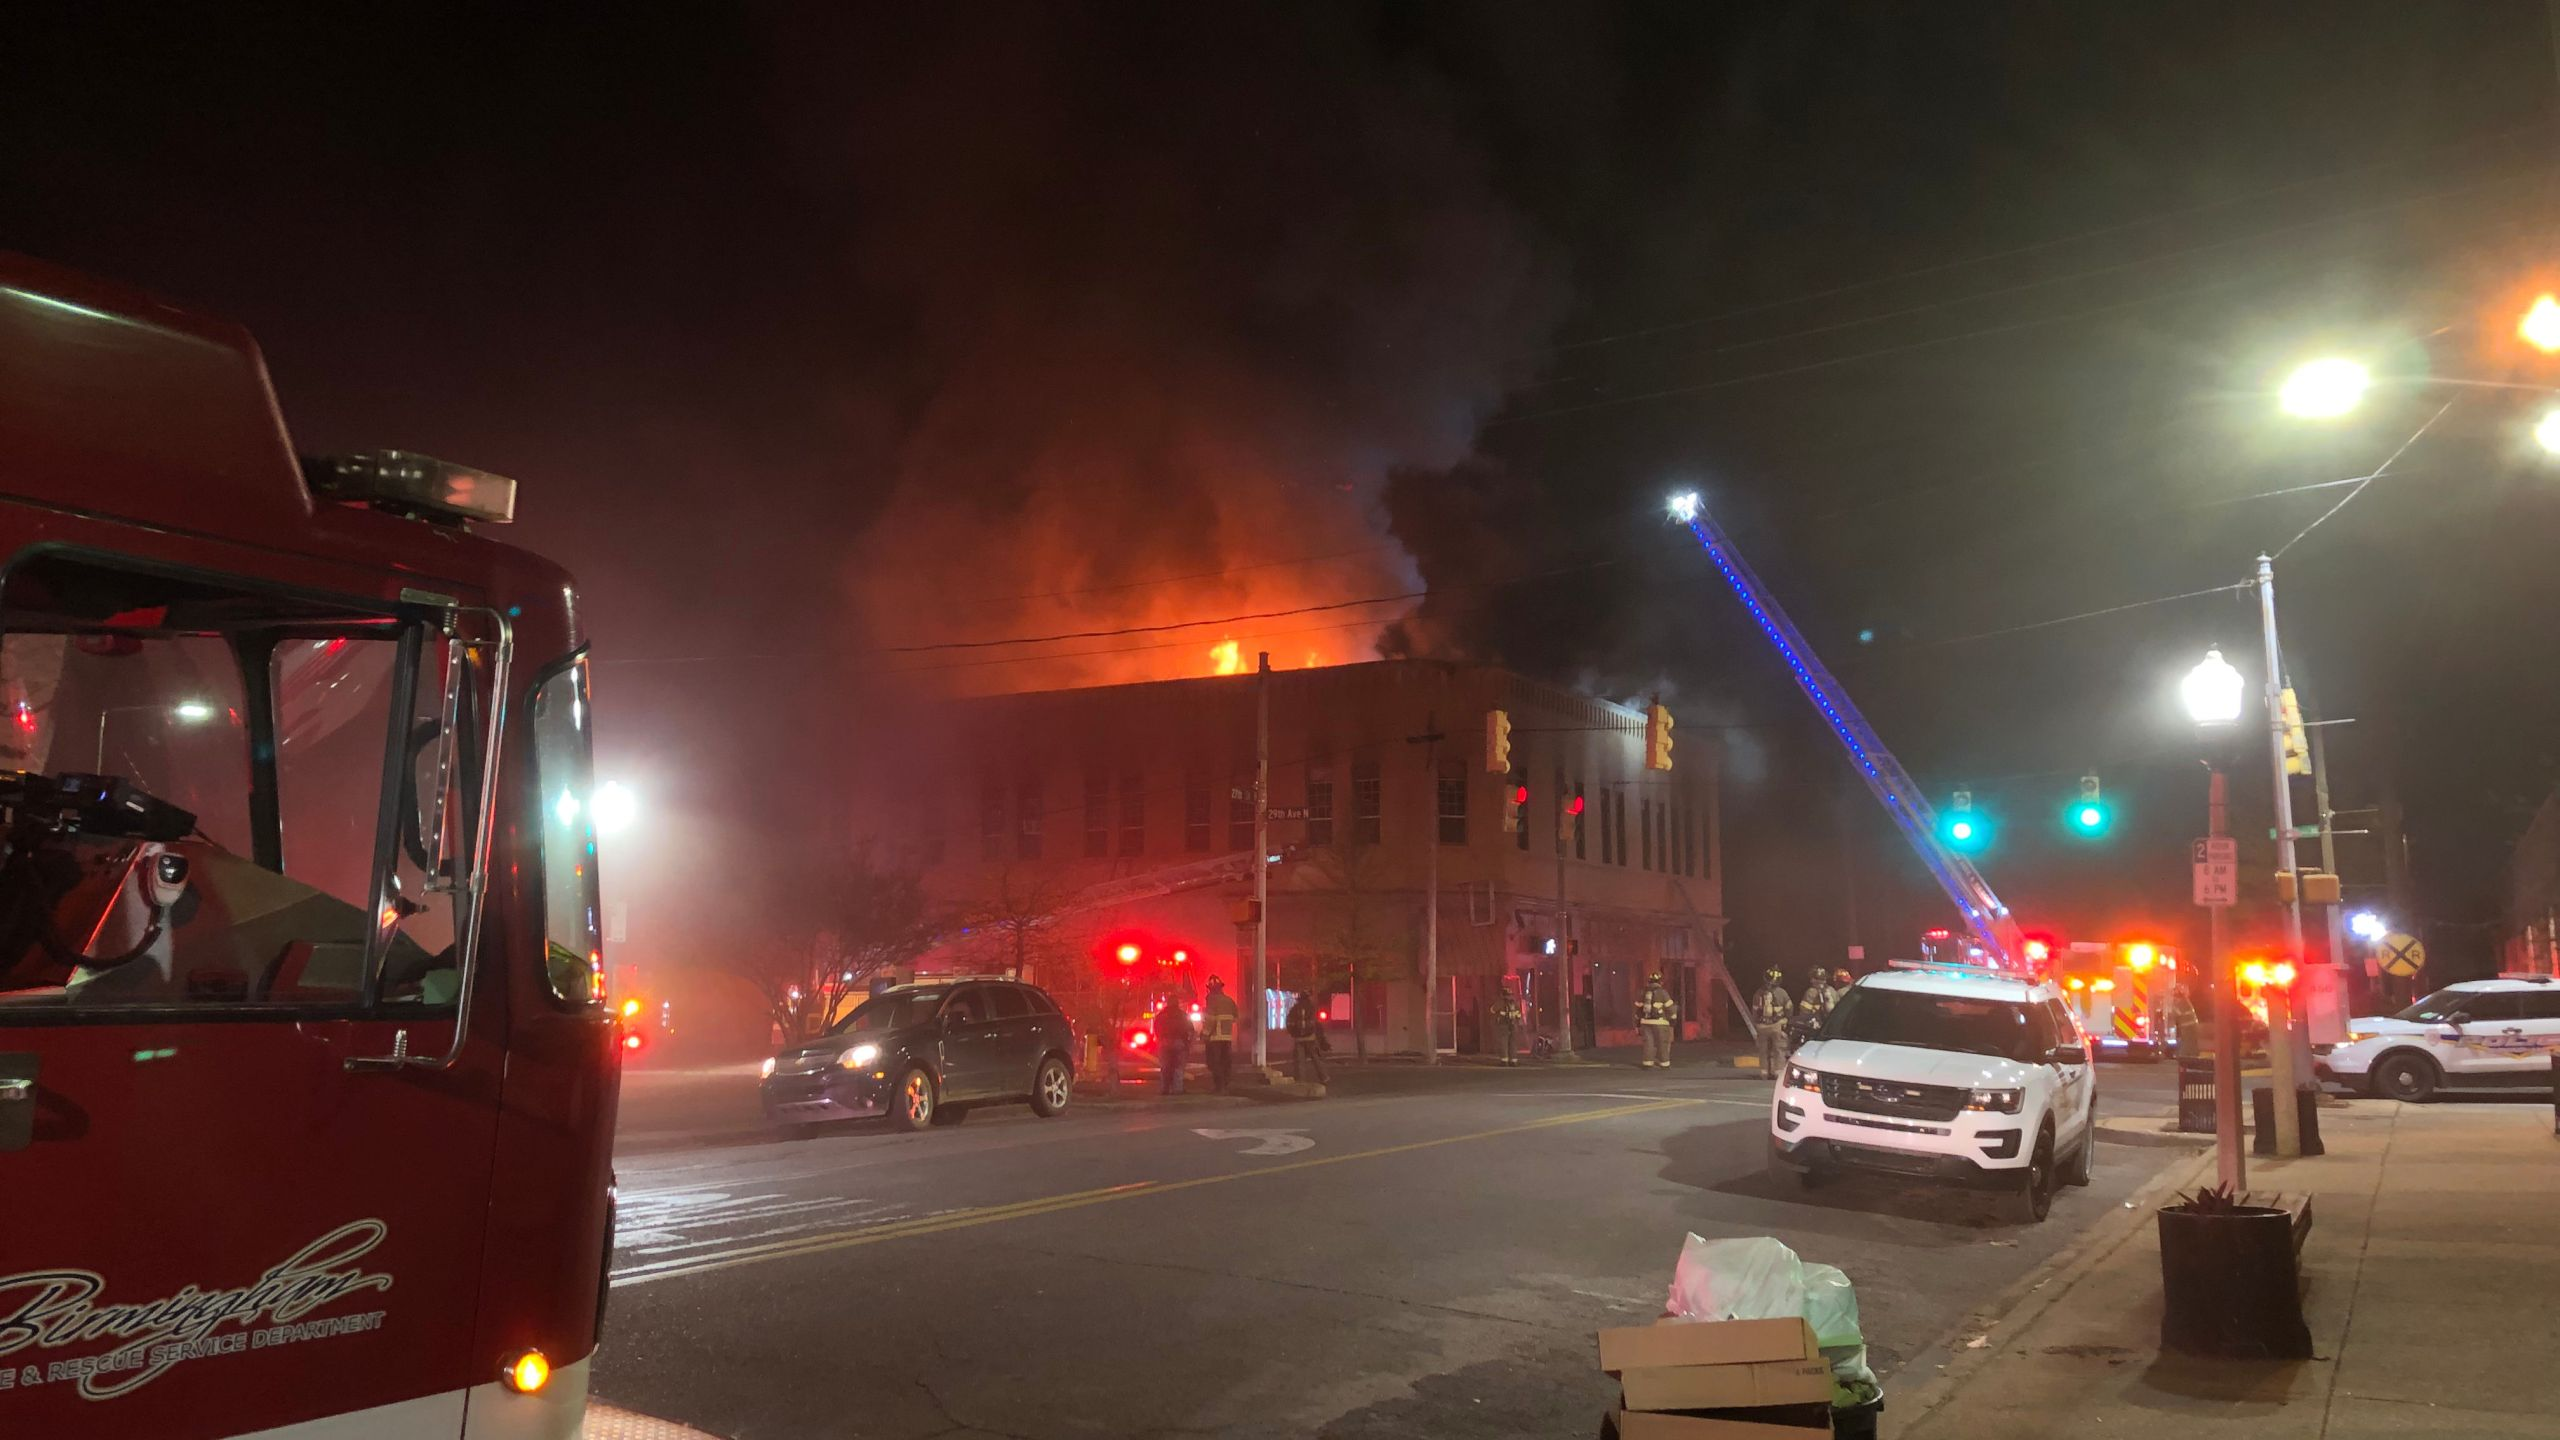 Commercial fire_twostory